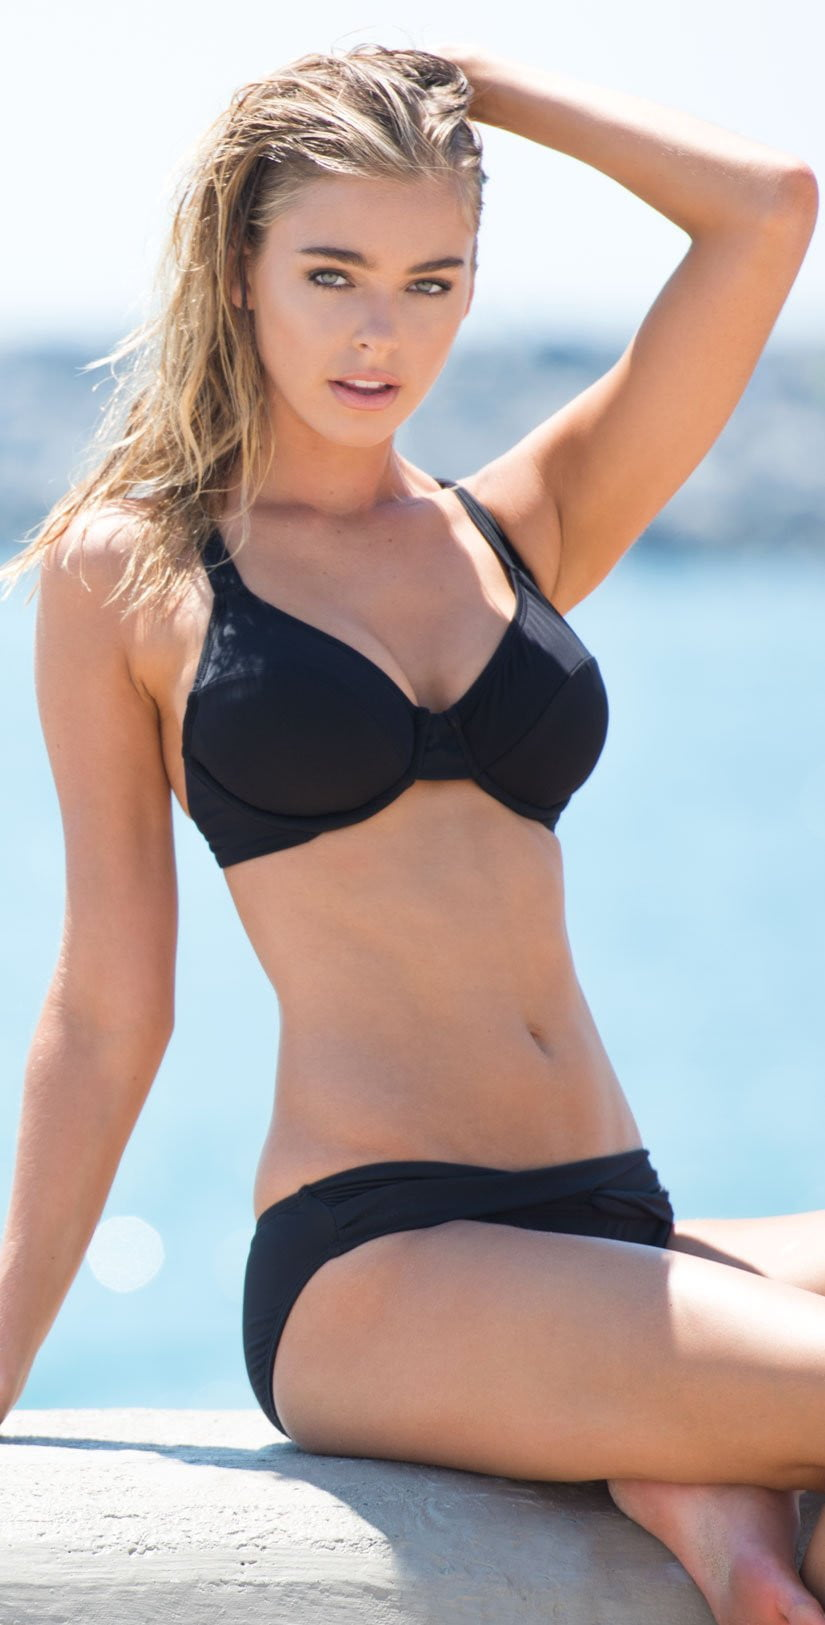 Sunsets Bardot Underwire Top in Black 57-Black: